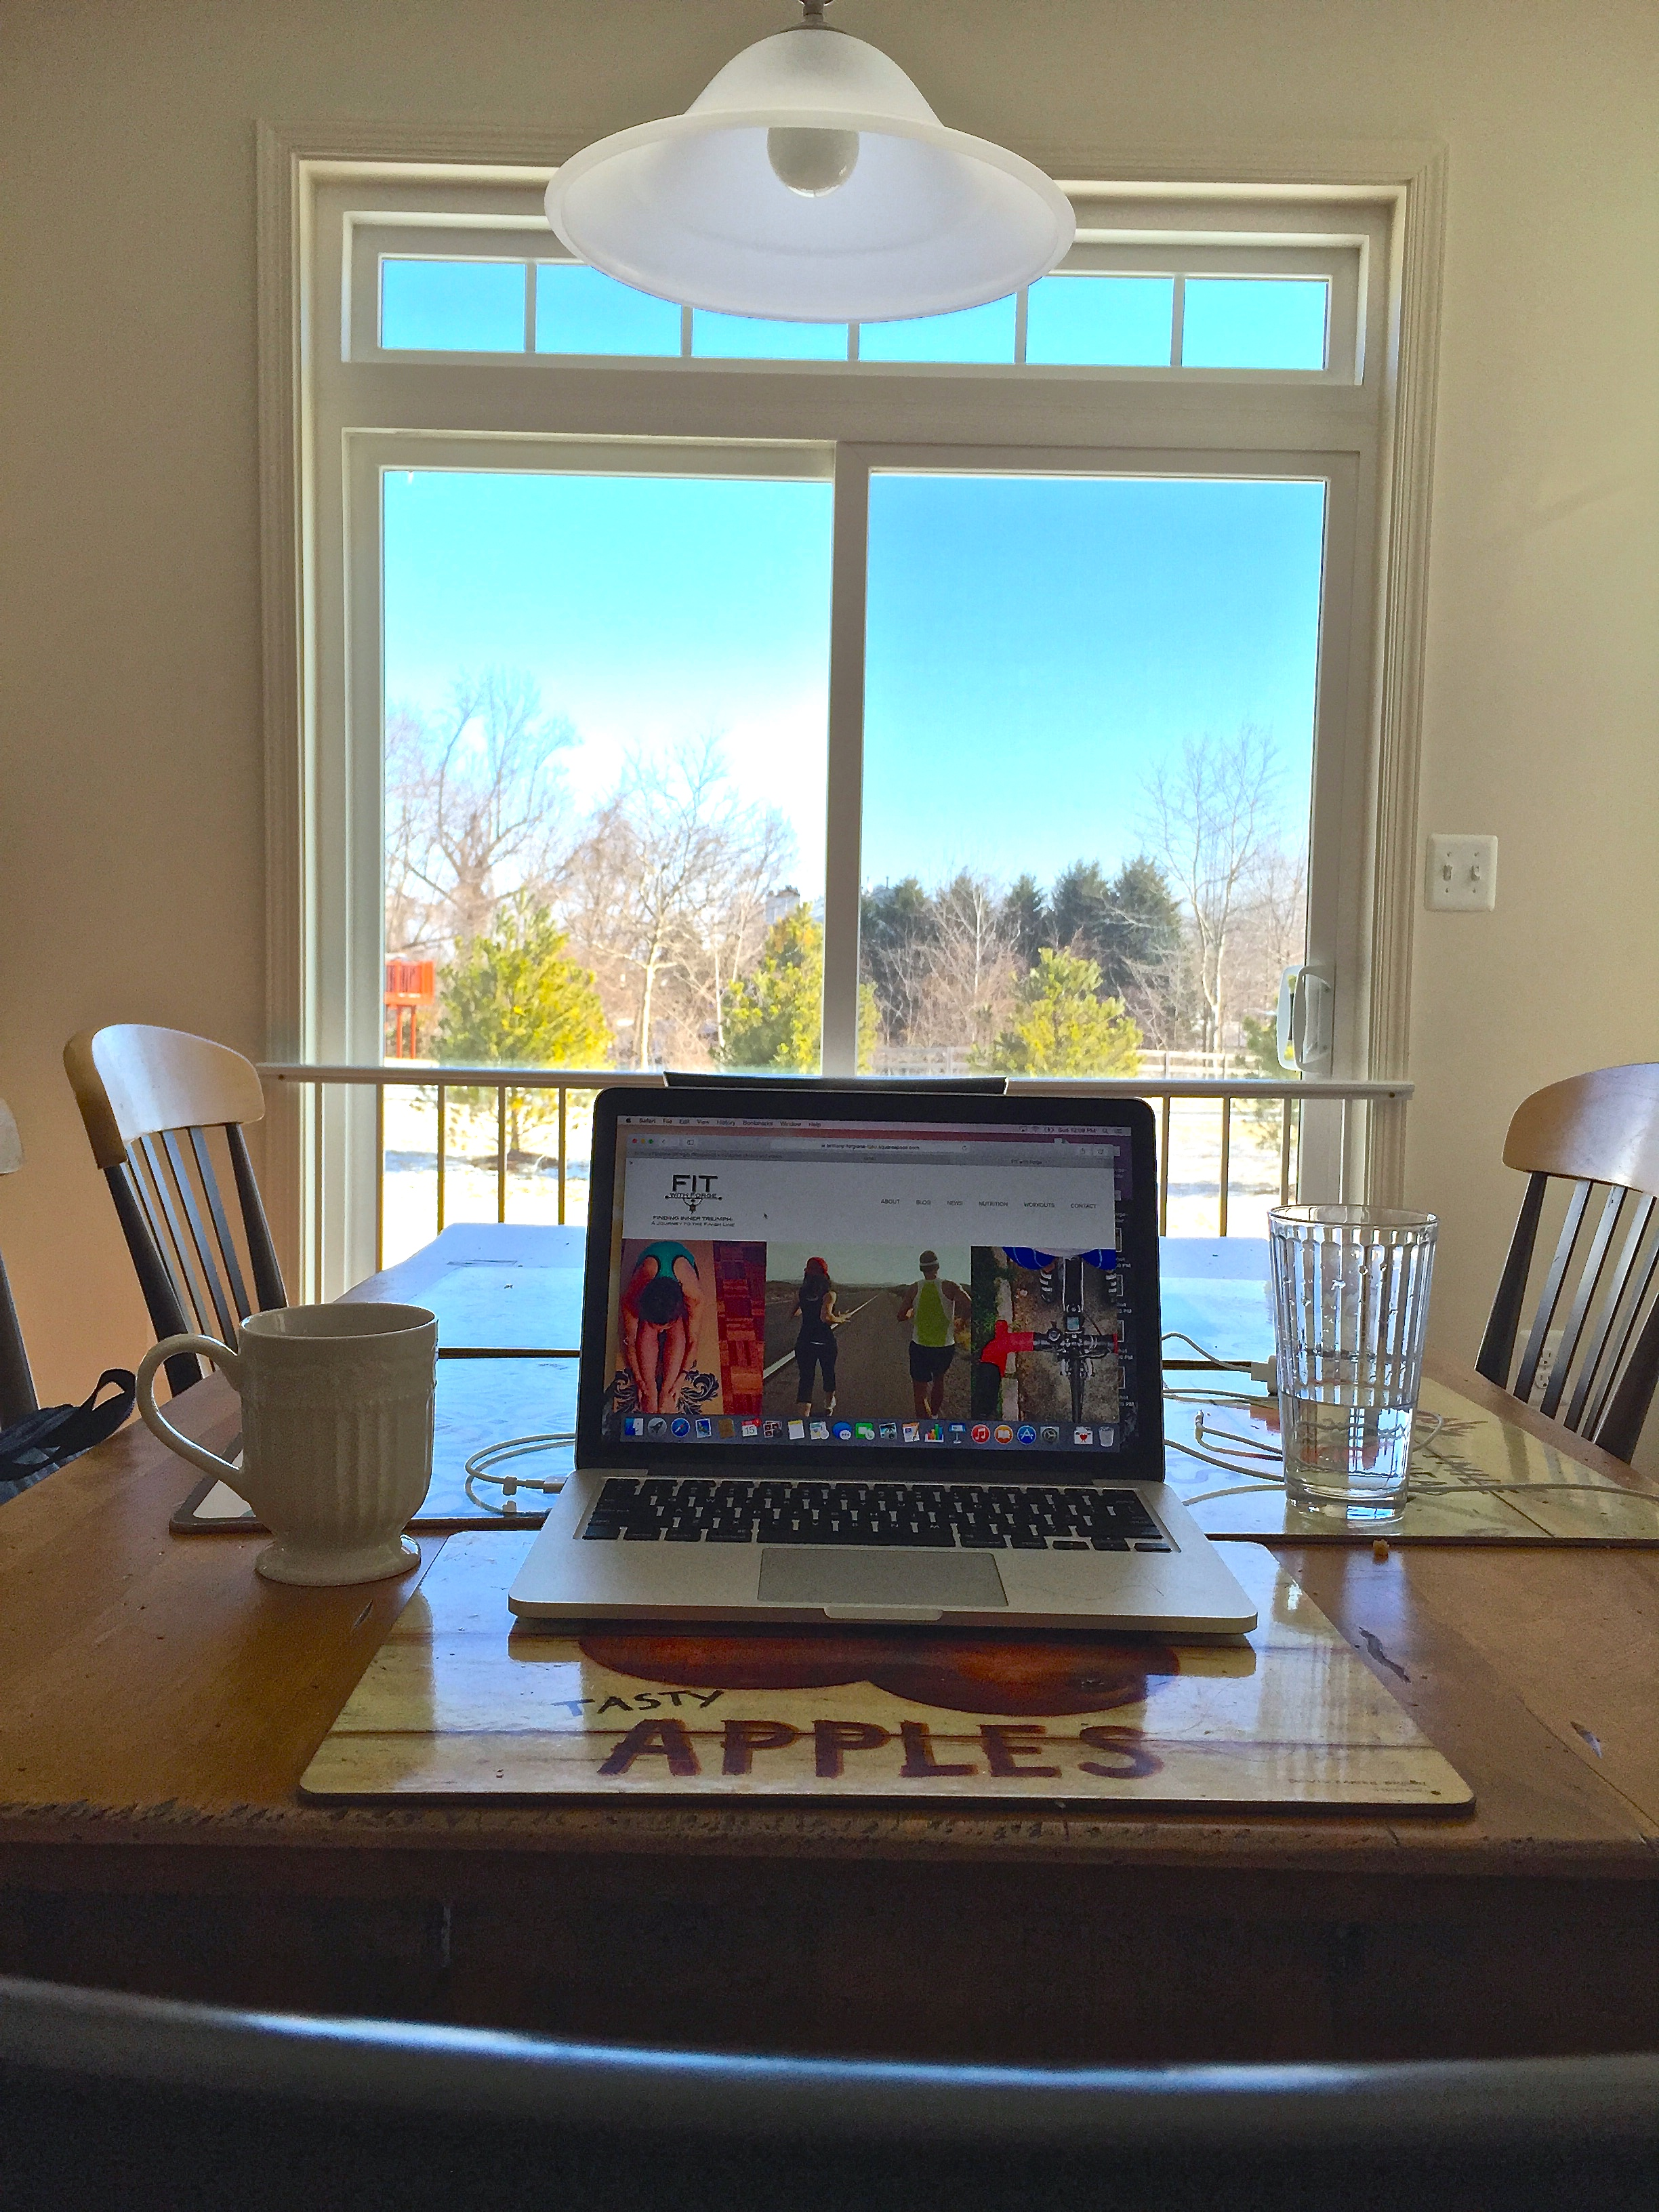 A new view: blogging from Baltimore, MD today.